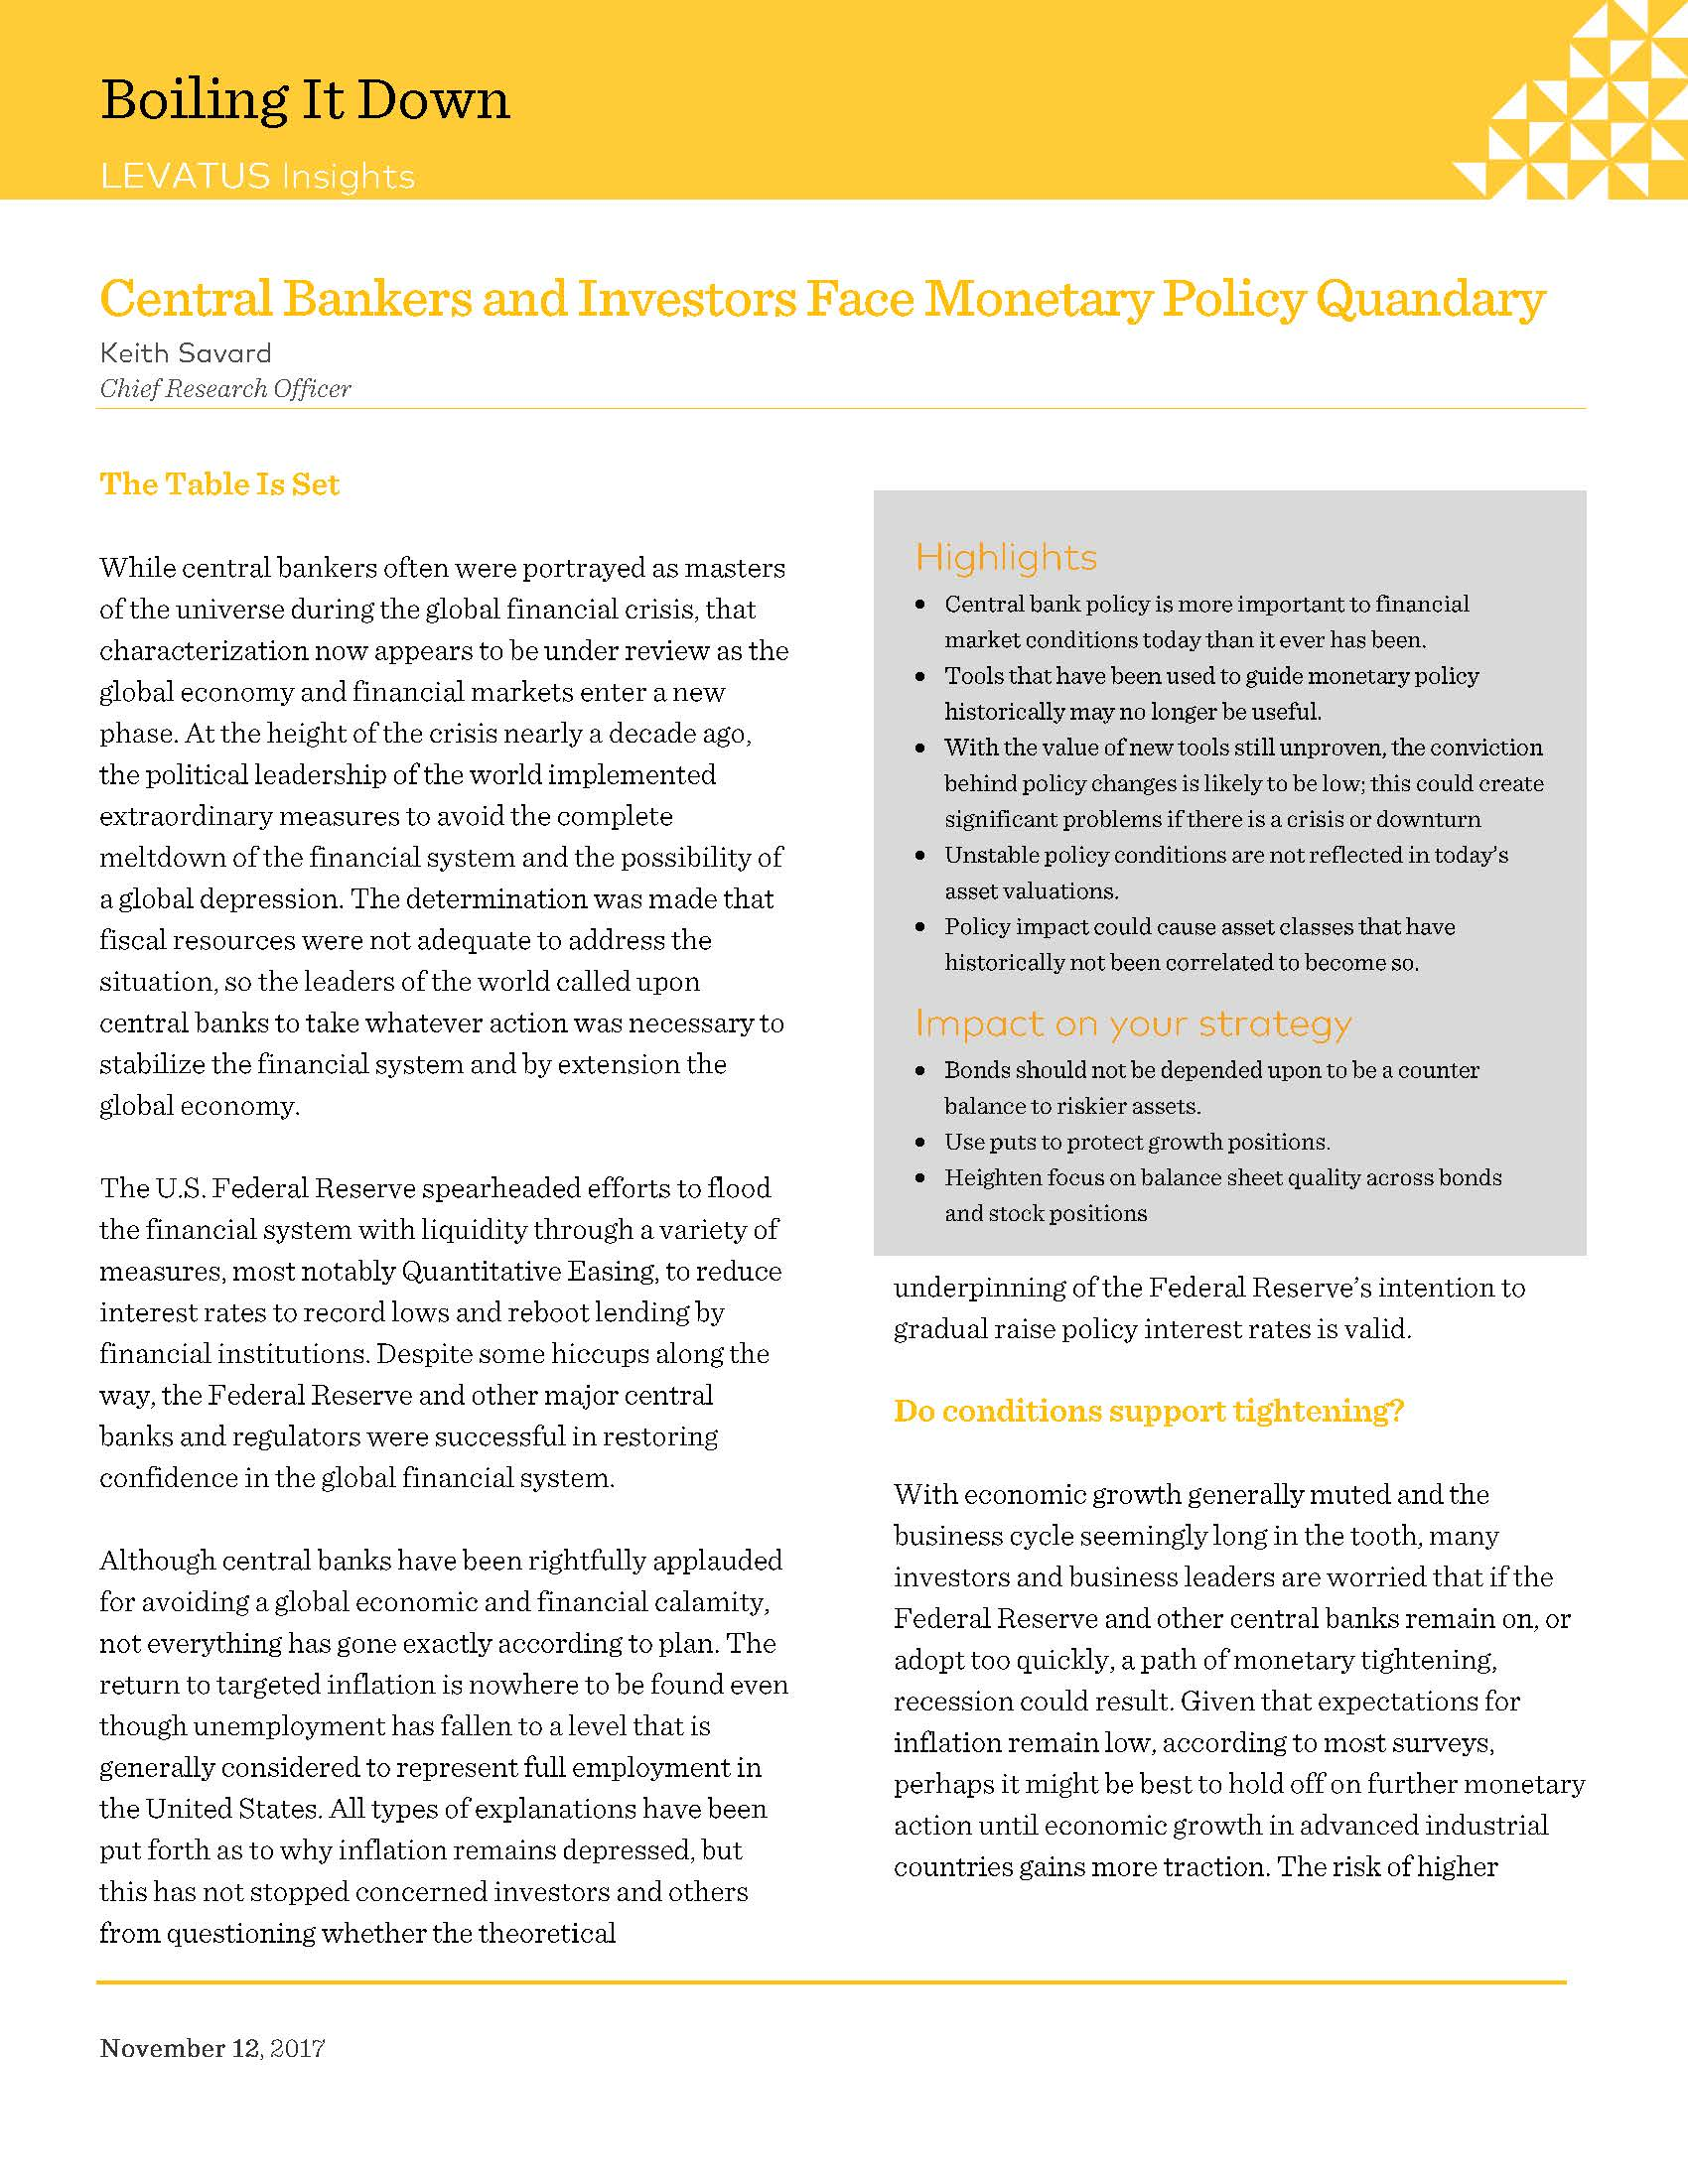 Insight Note - Central Bank Quandry PDF_Page_1.jpg